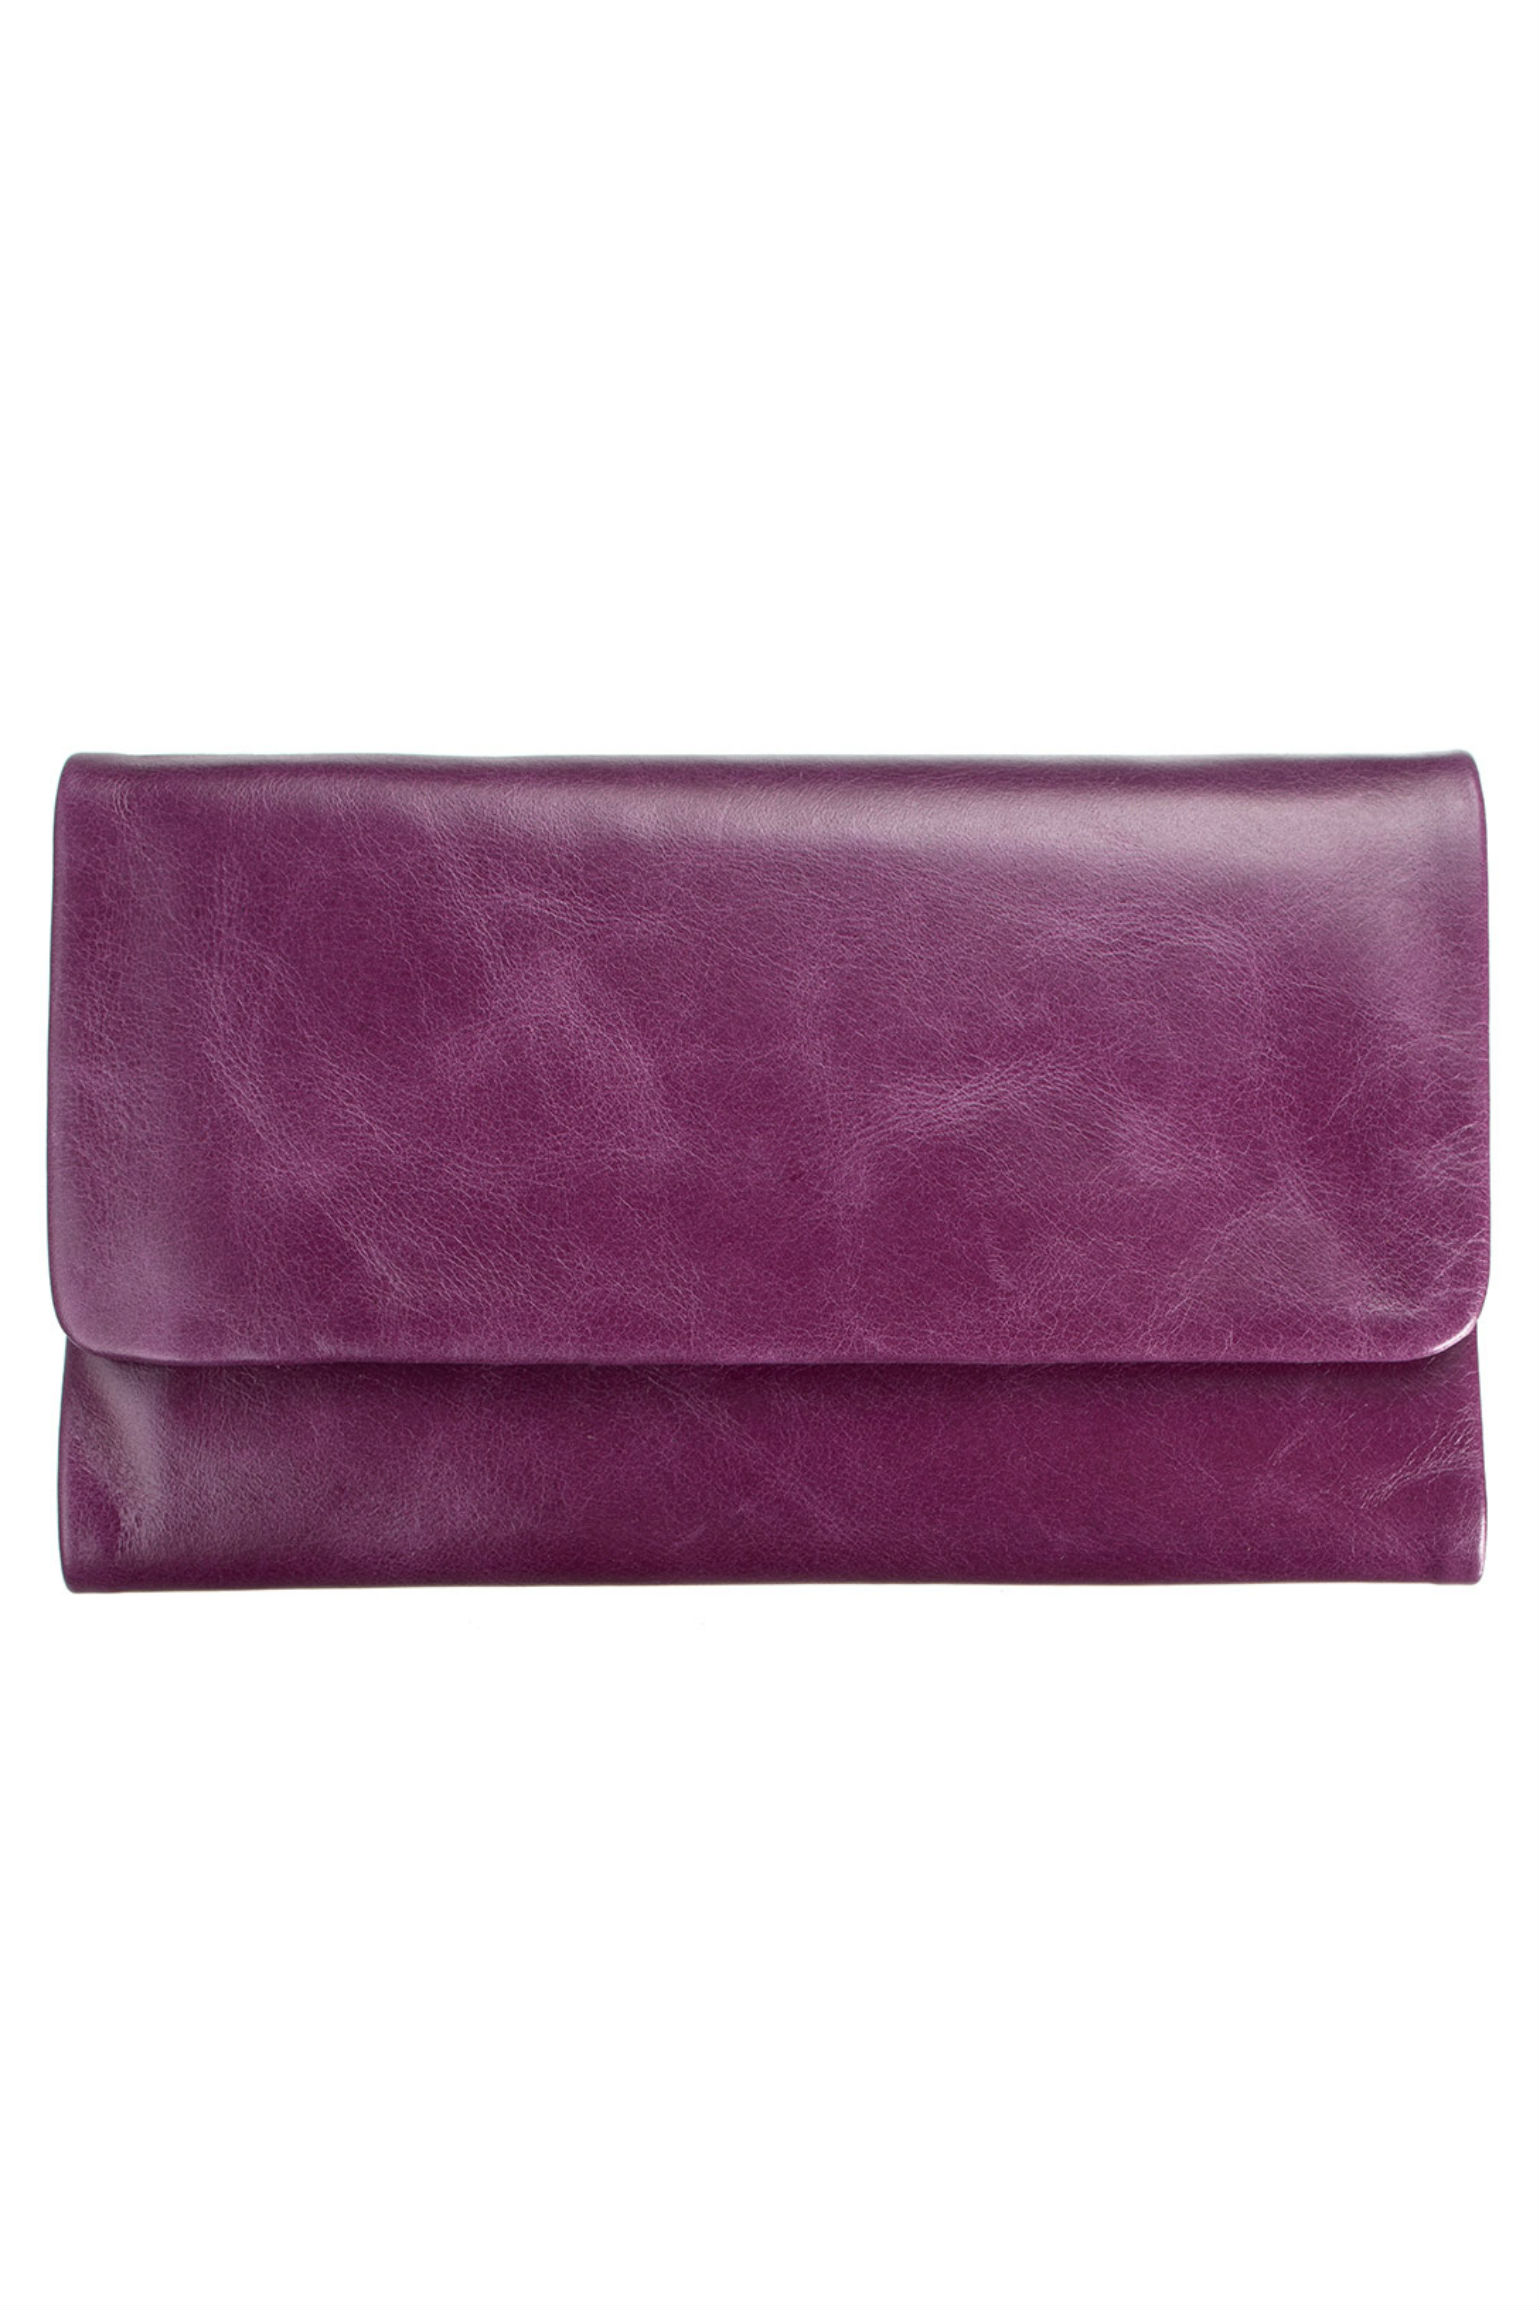 Status Anxiety Audrey Wallet Purple